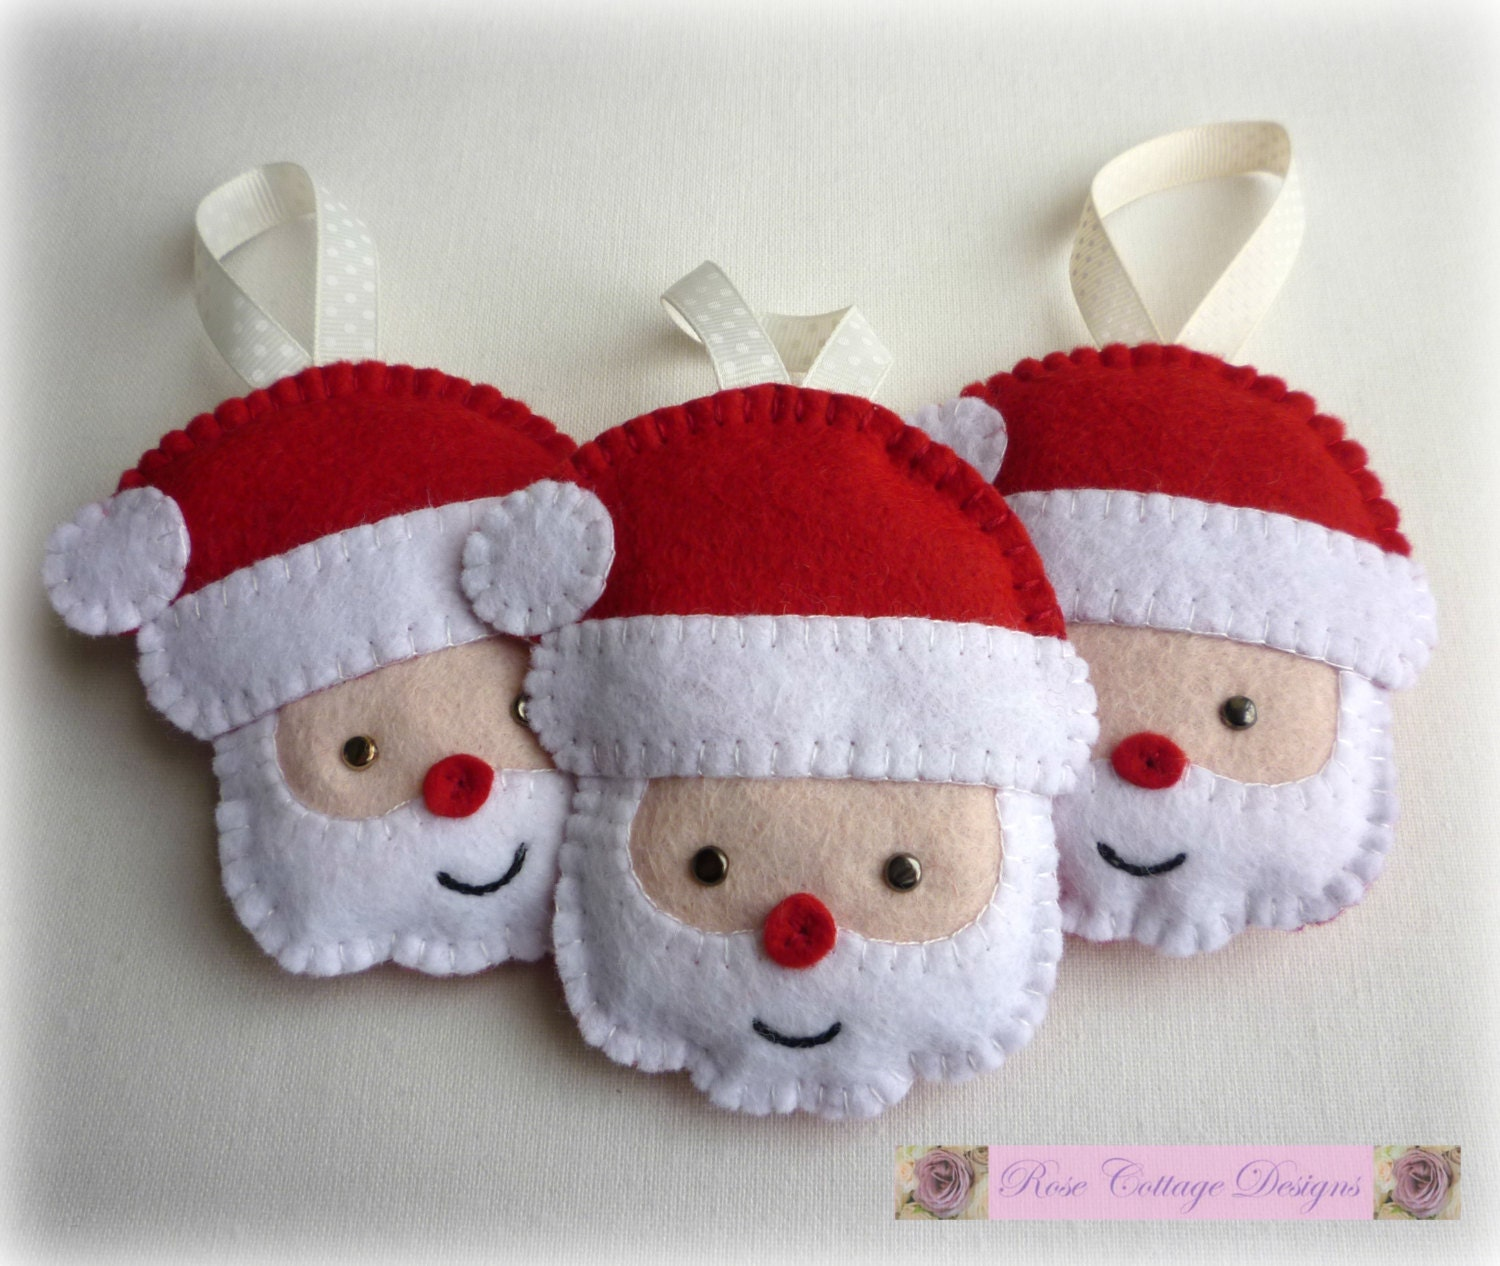 Felt santa handmade ornaments by rosecottagedesignss on etsy